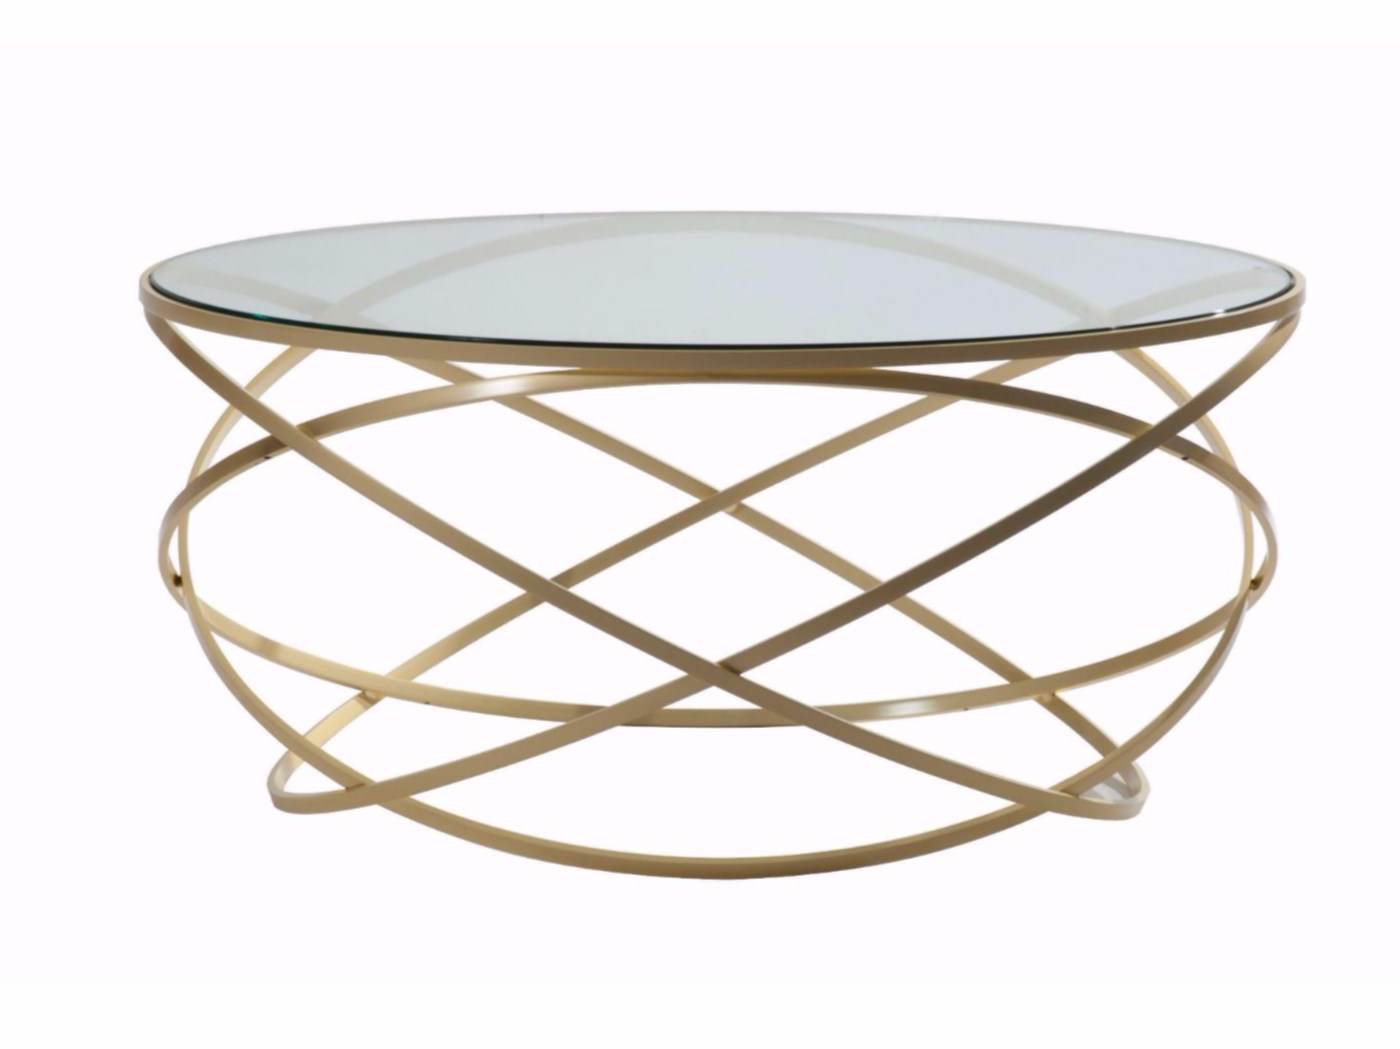 table basse ronde en acier et verre evol by roche bobois. Black Bedroom Furniture Sets. Home Design Ideas